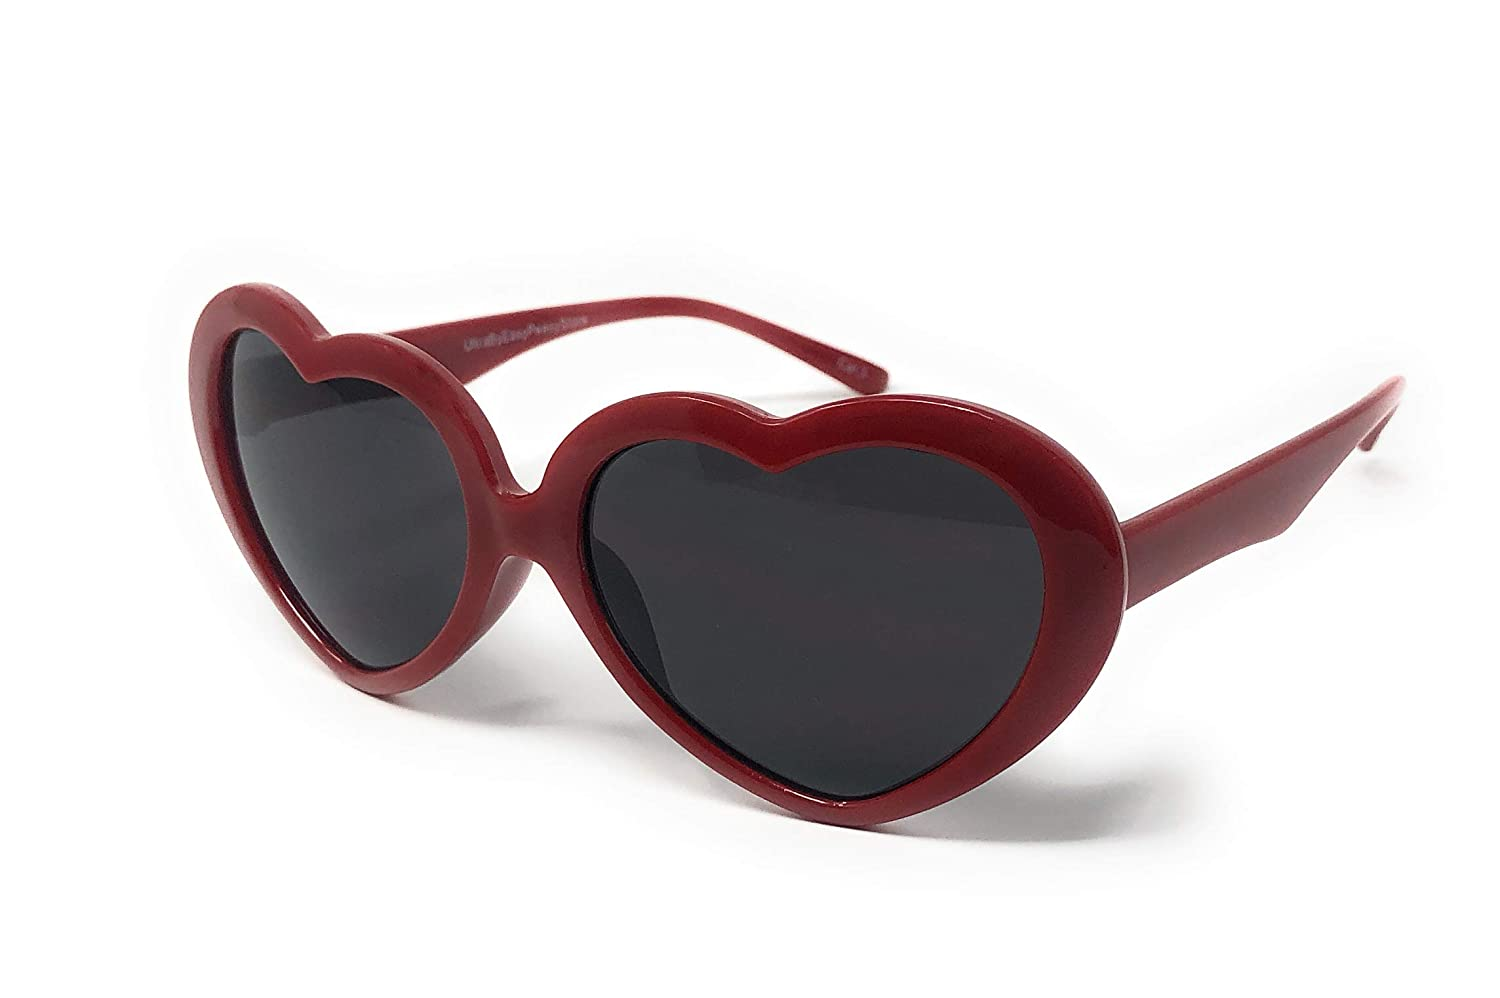 Ultra Girls Red and Pink Coloured Heart Shaped Sunglasses Childrens Kids Girls Stylish Cute Designer Style Sunglasses High Quality Retro UV400 Shades UVA UVB Protection Fancy Dress HEARTSG1